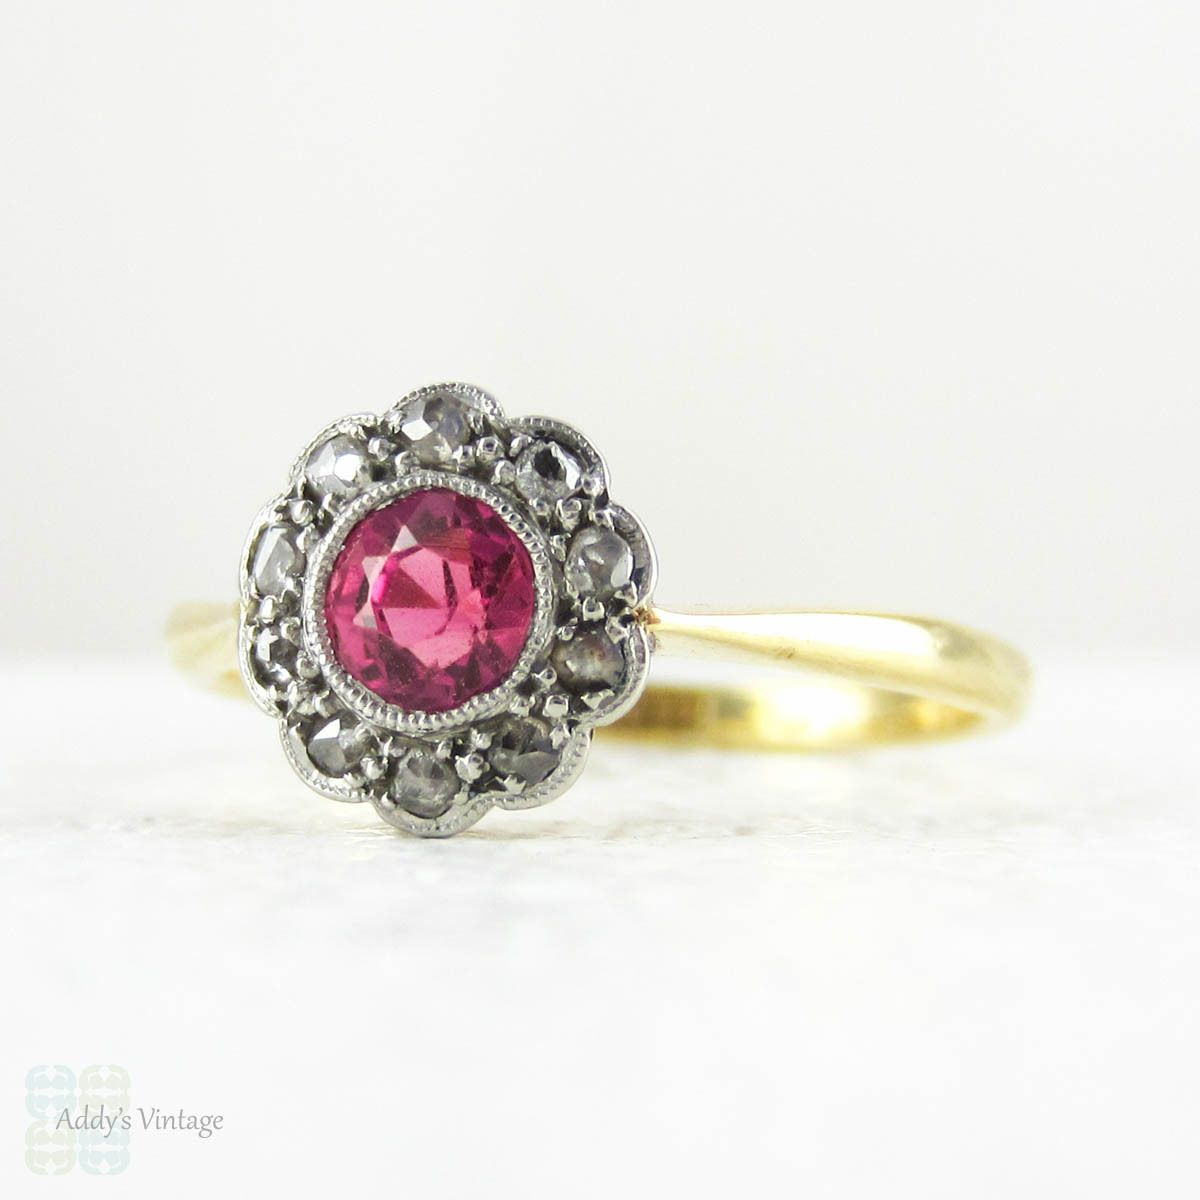 Httpaddysvintageart deco ruby engagement ring daisy art deco ruby engagement ring daisy flower shaped cluster ring with rose cut diamond halo pink red ruby sapphire in 18 carat platinum izmirmasajfo Image collections